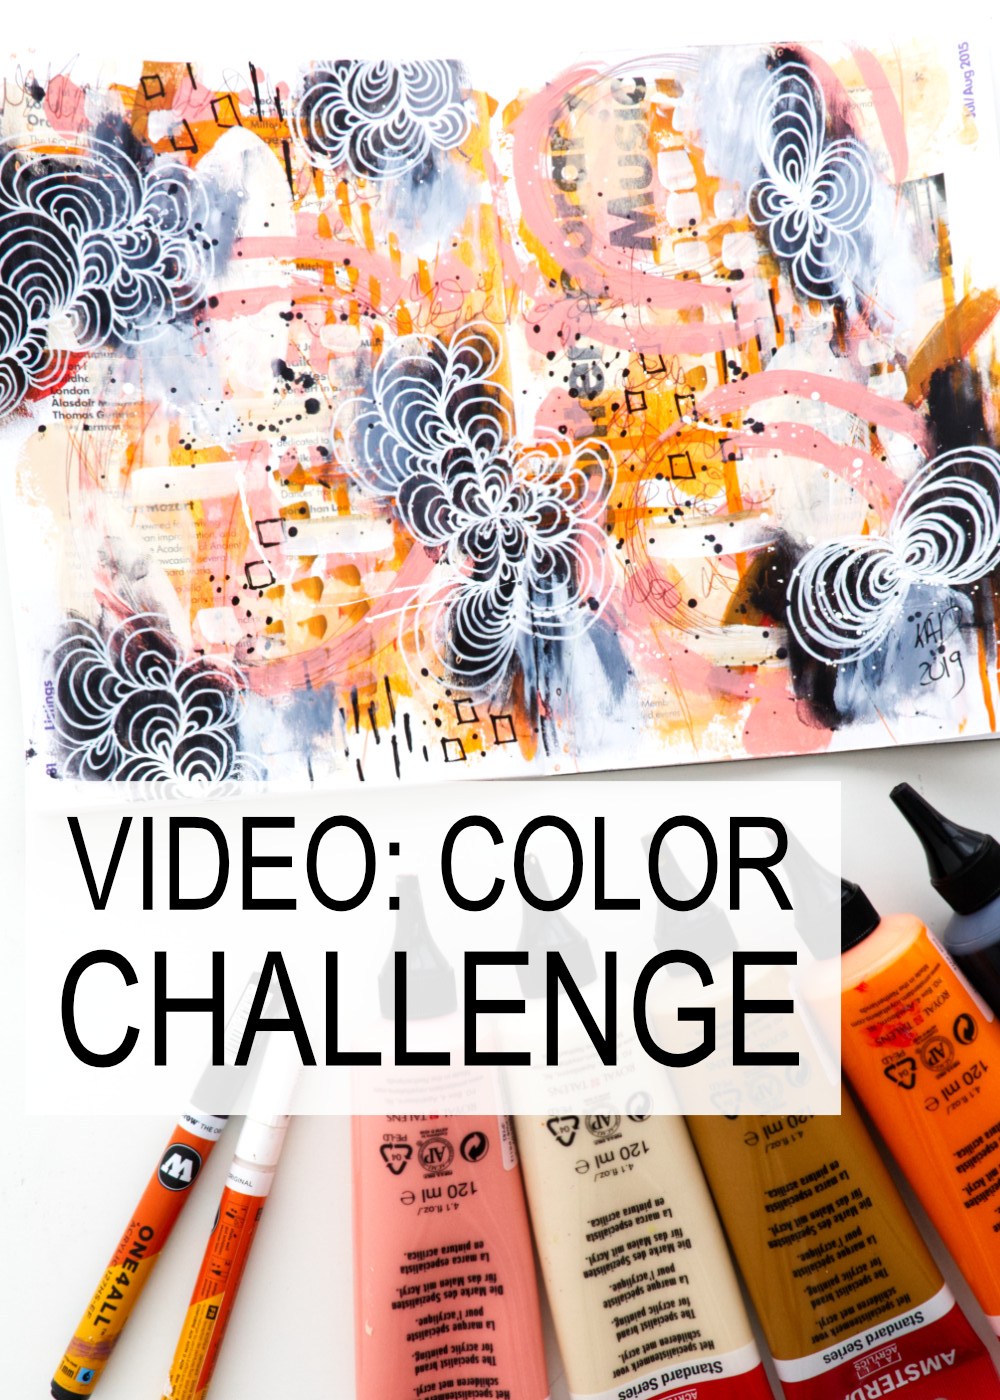 VIDEO: Mixed Media Acrylic Painting And An Art Challenge